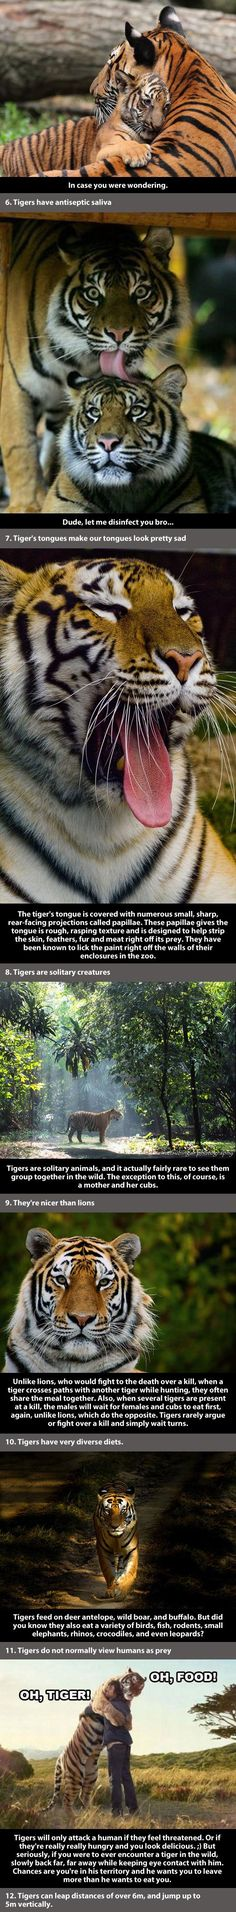 Now I need a tiger...